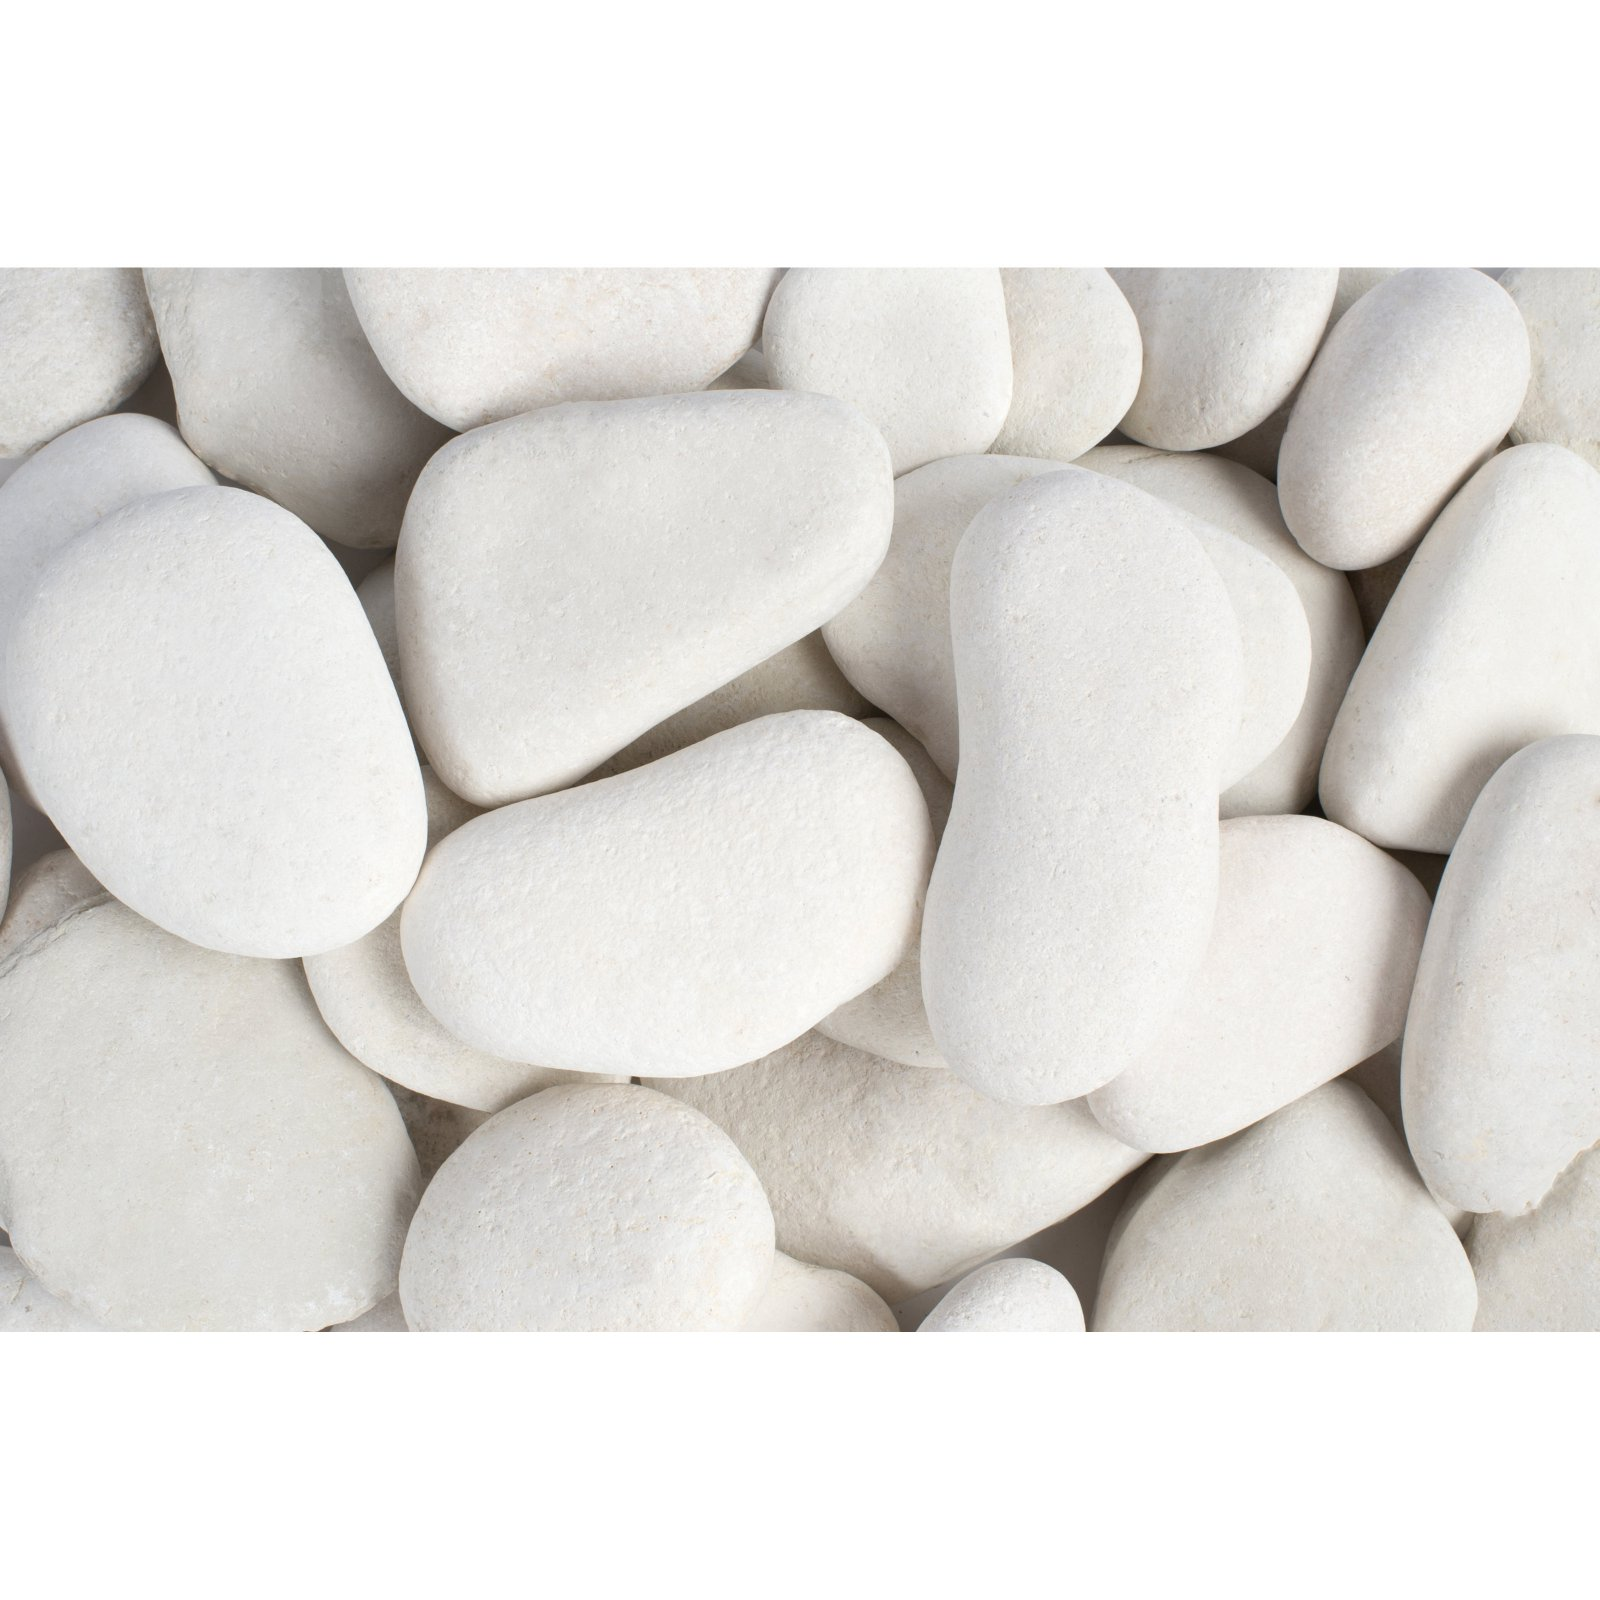 "Margo 30 lb Large Flat Caribbean Beach Pebbles, 3"" to 5"""